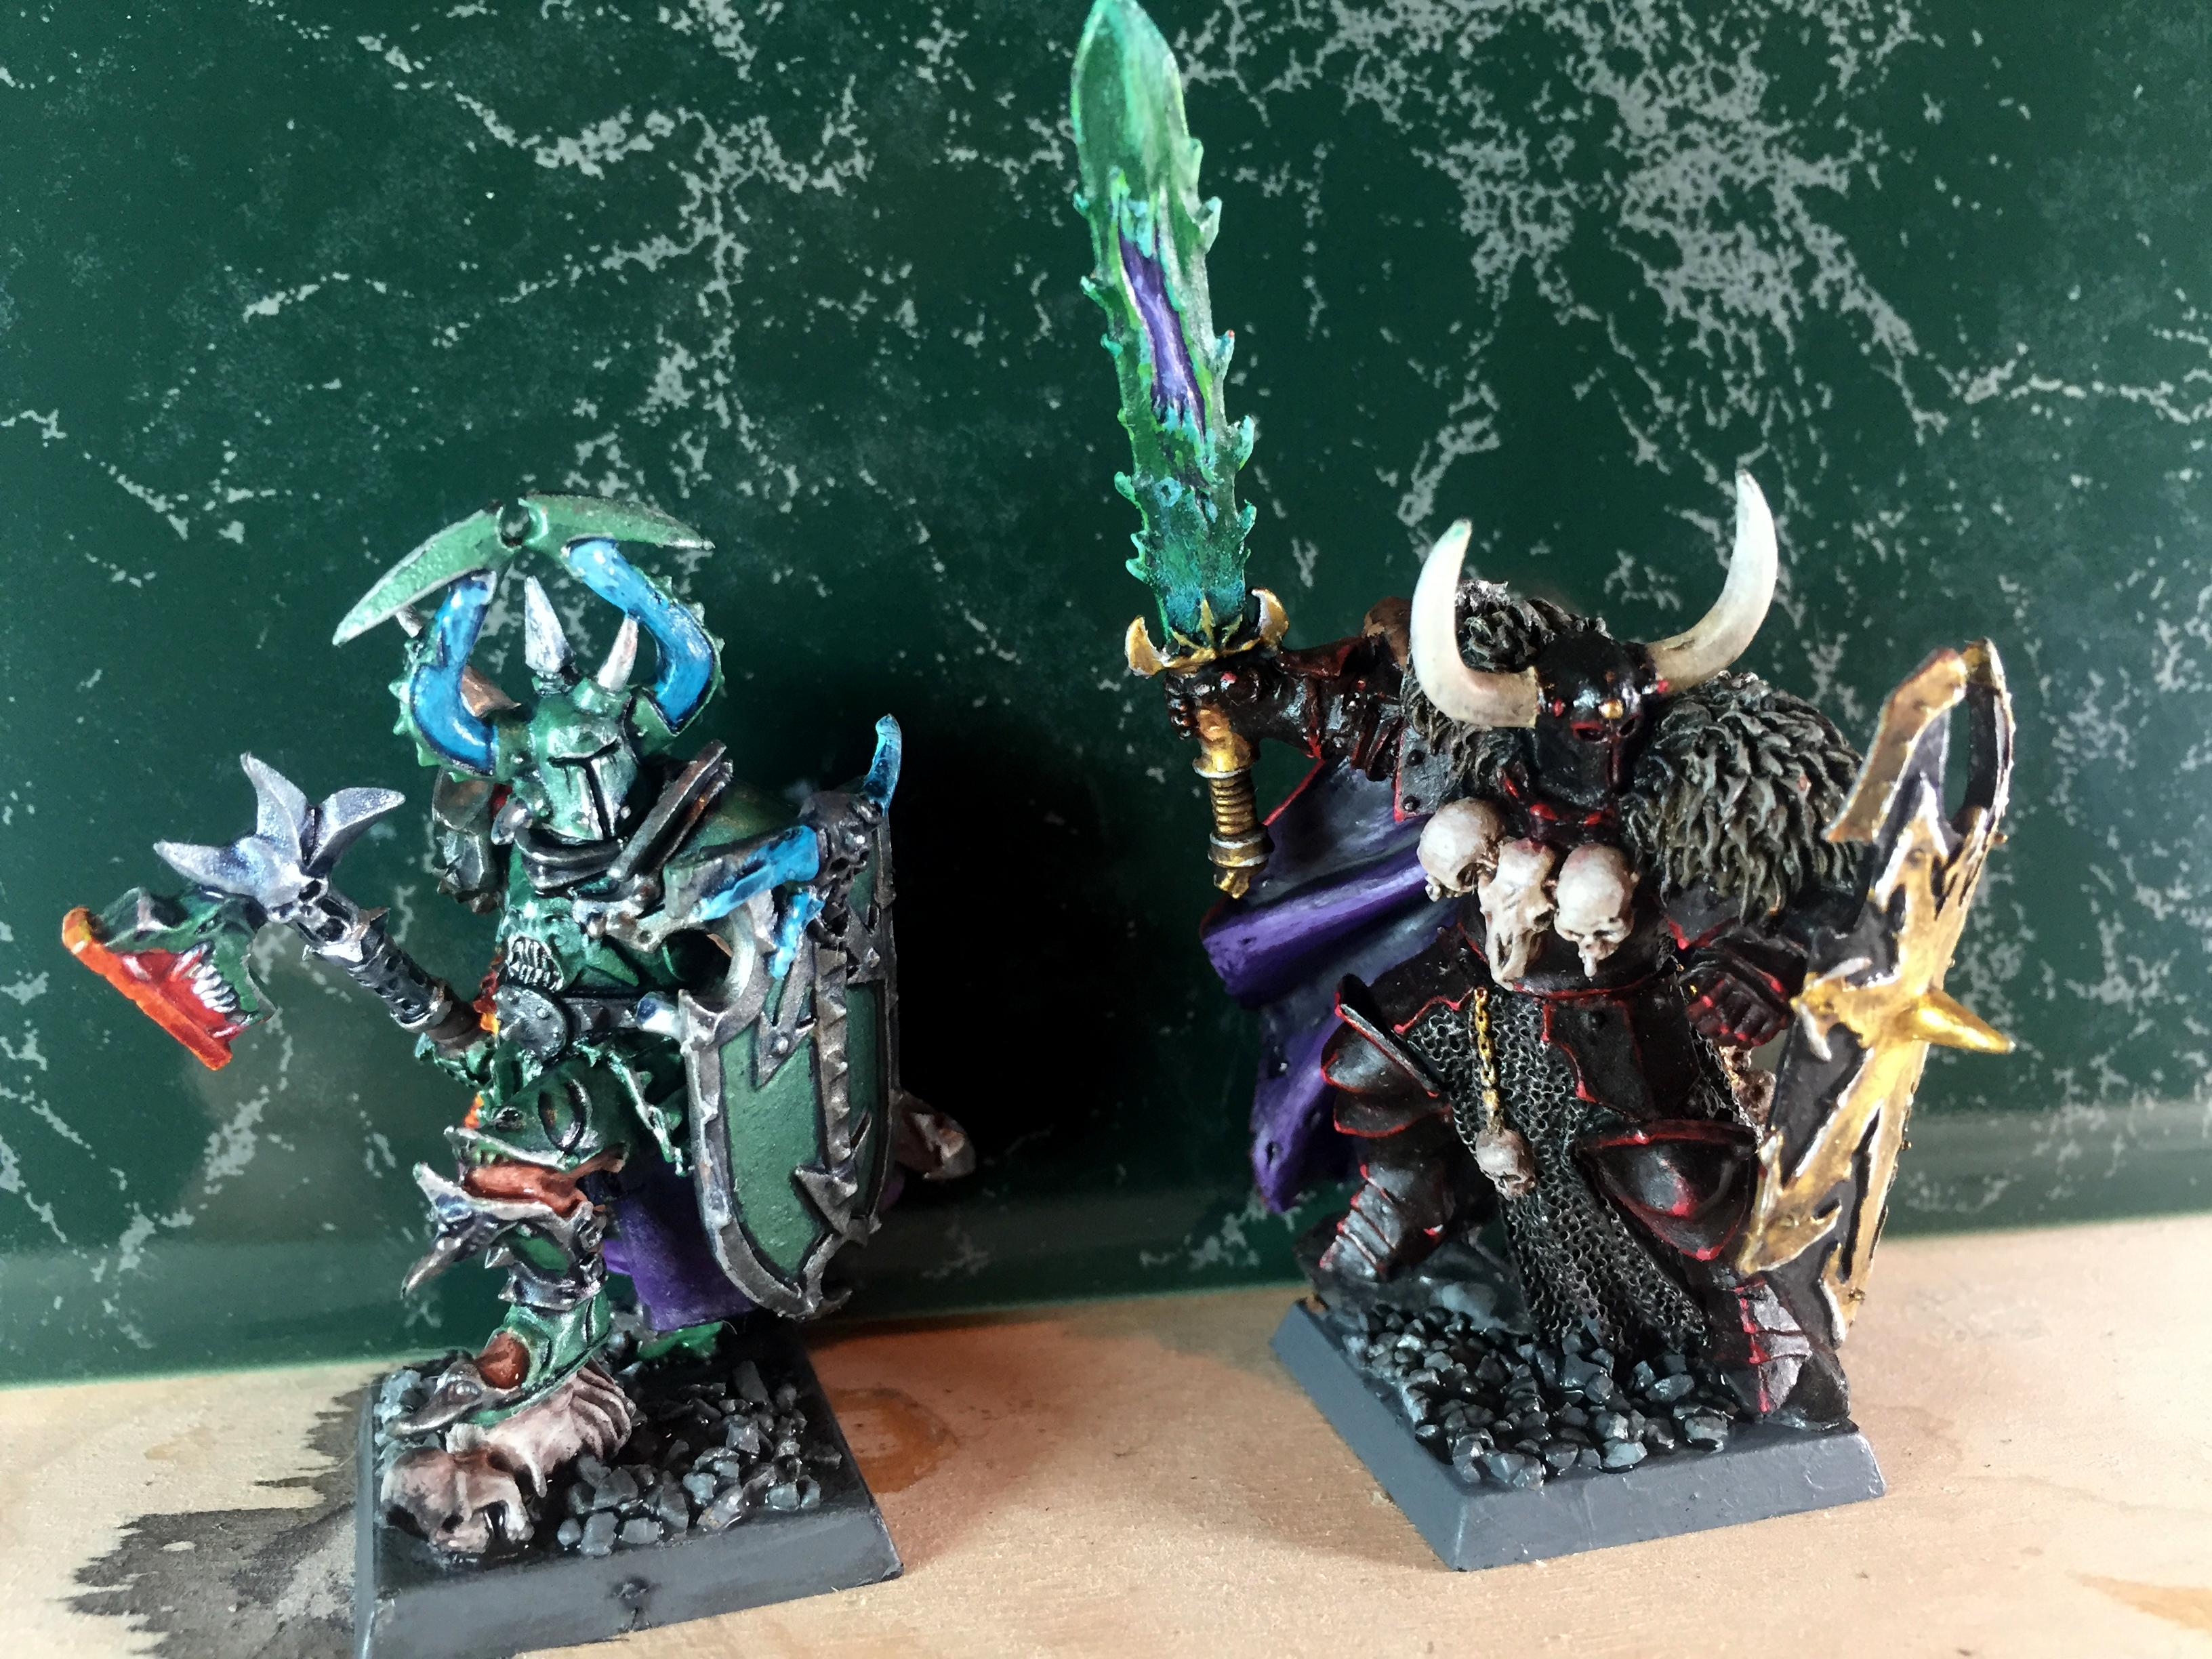 Archaon, Chaos, Chaos Lord, Chaos Warrior, Harry The Hammer, Hero, Warhammer Quest